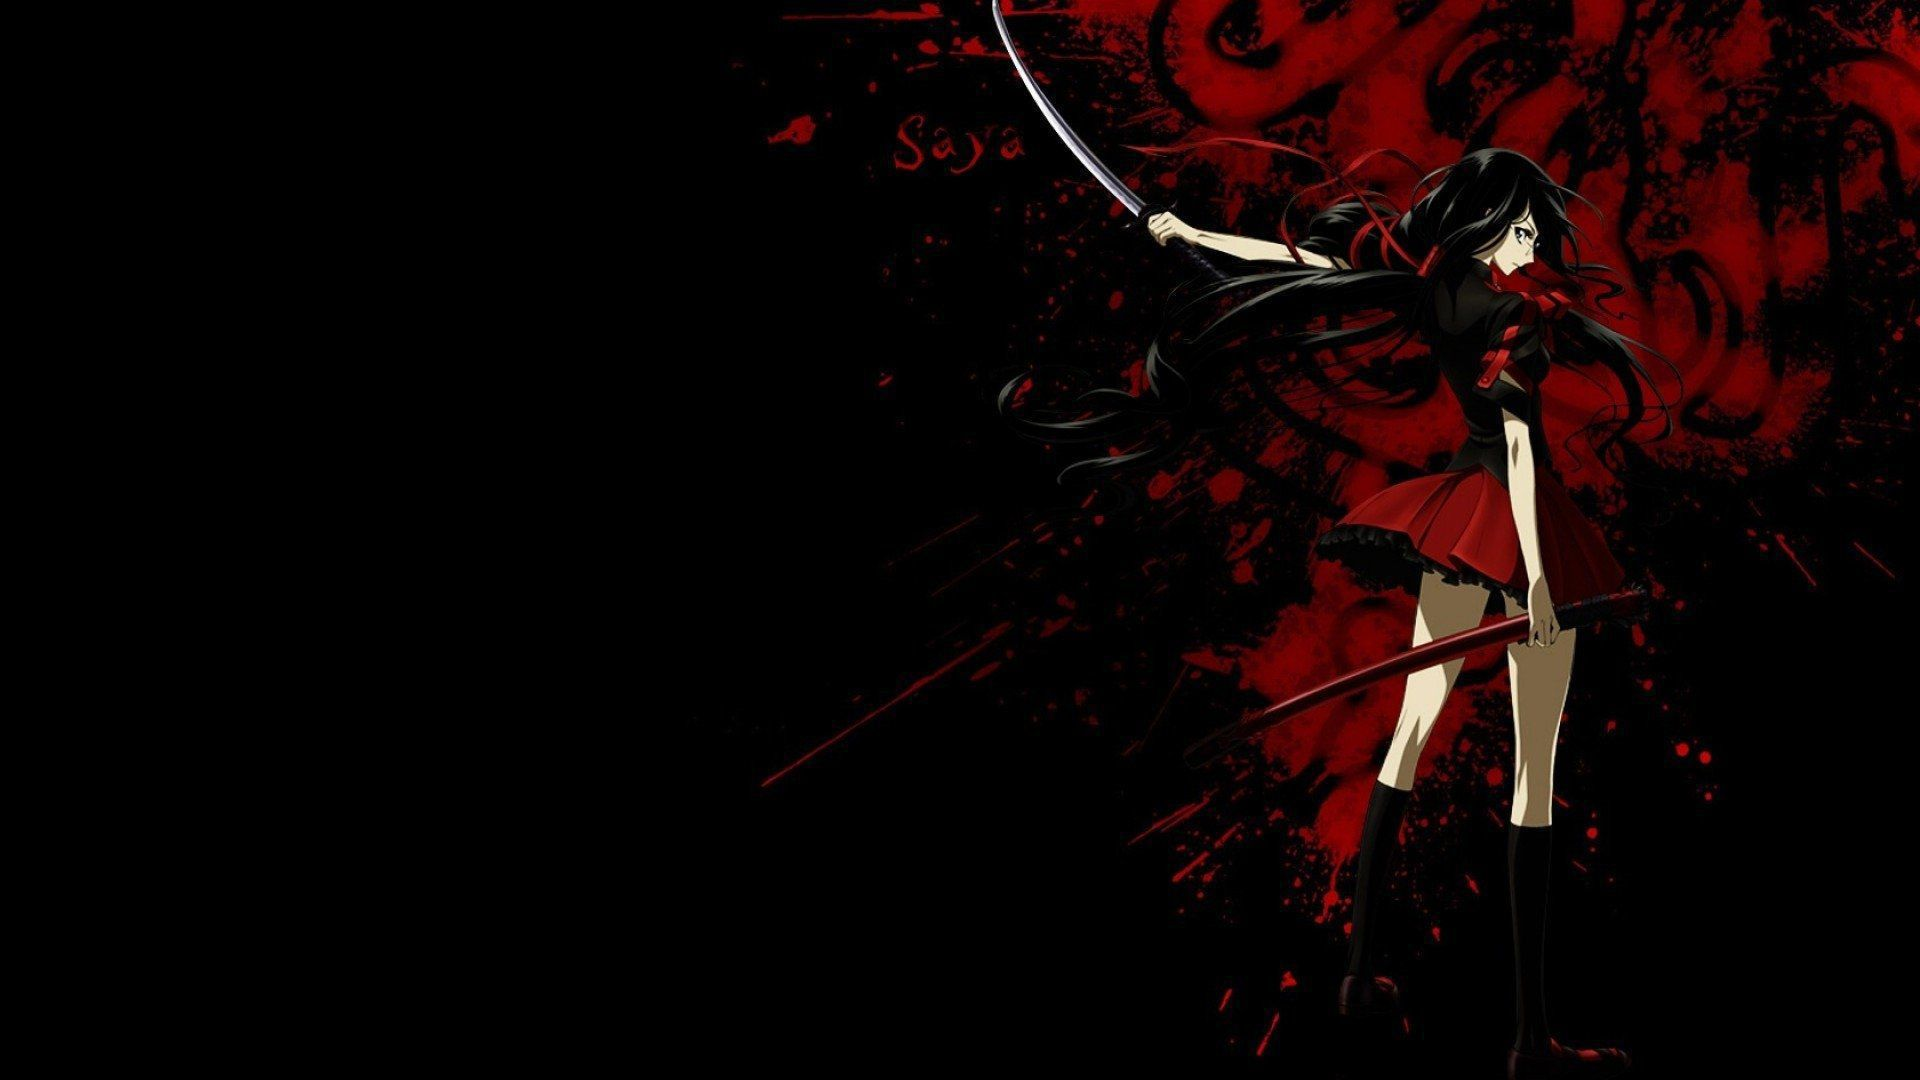 Blood Anime HD Background